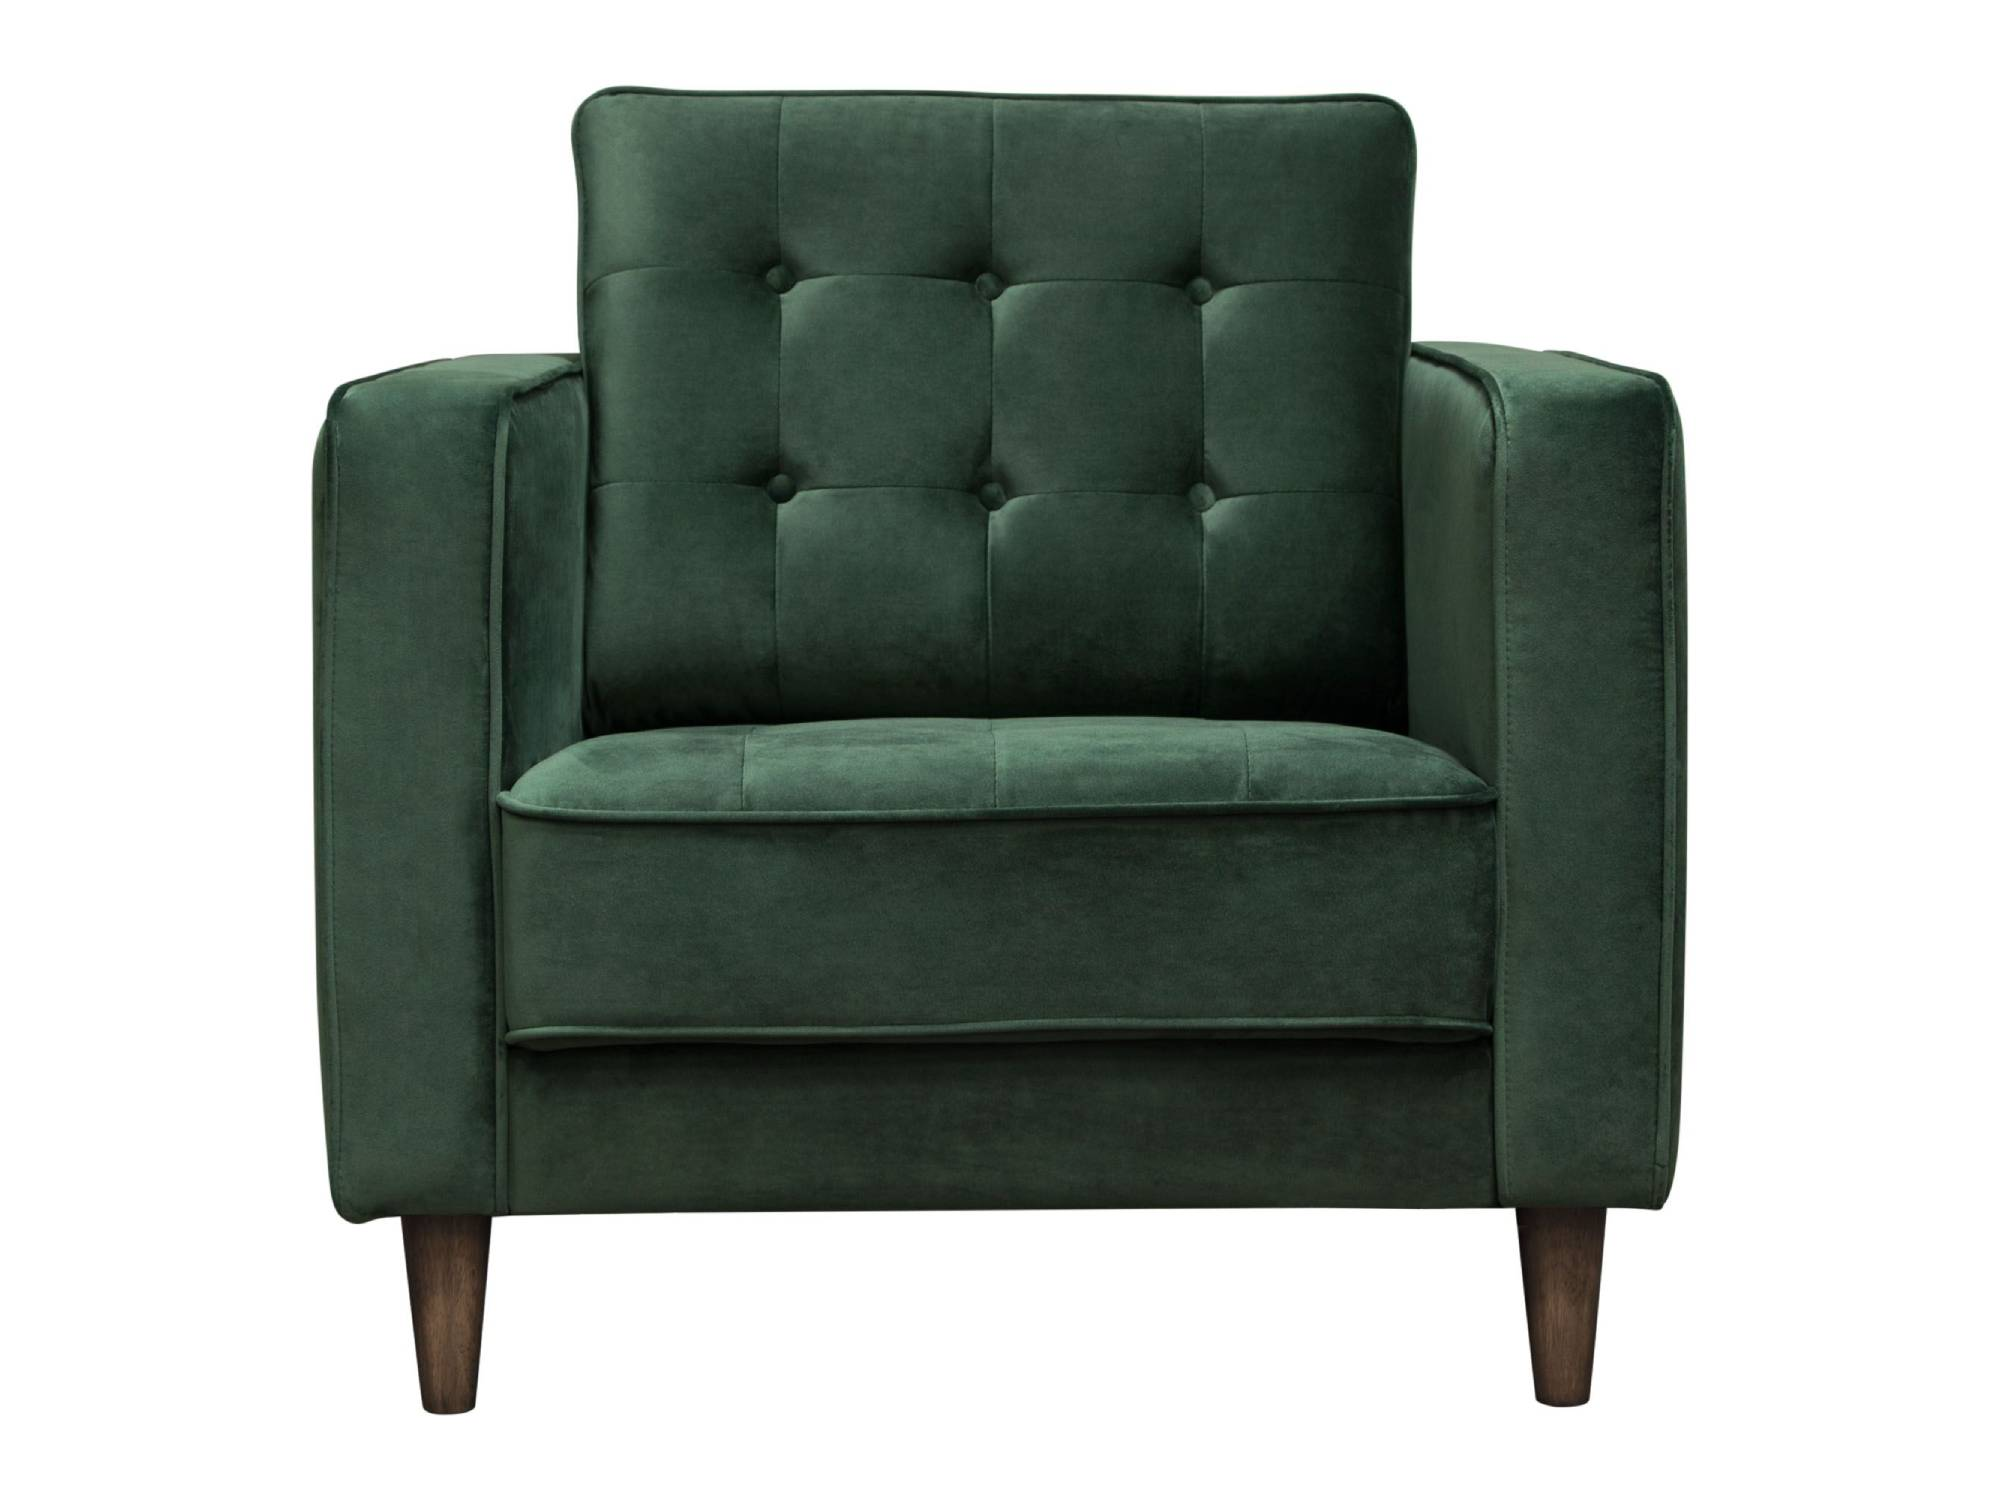 LIVINGSTON ARMCHAIR - HUNTER GREEN